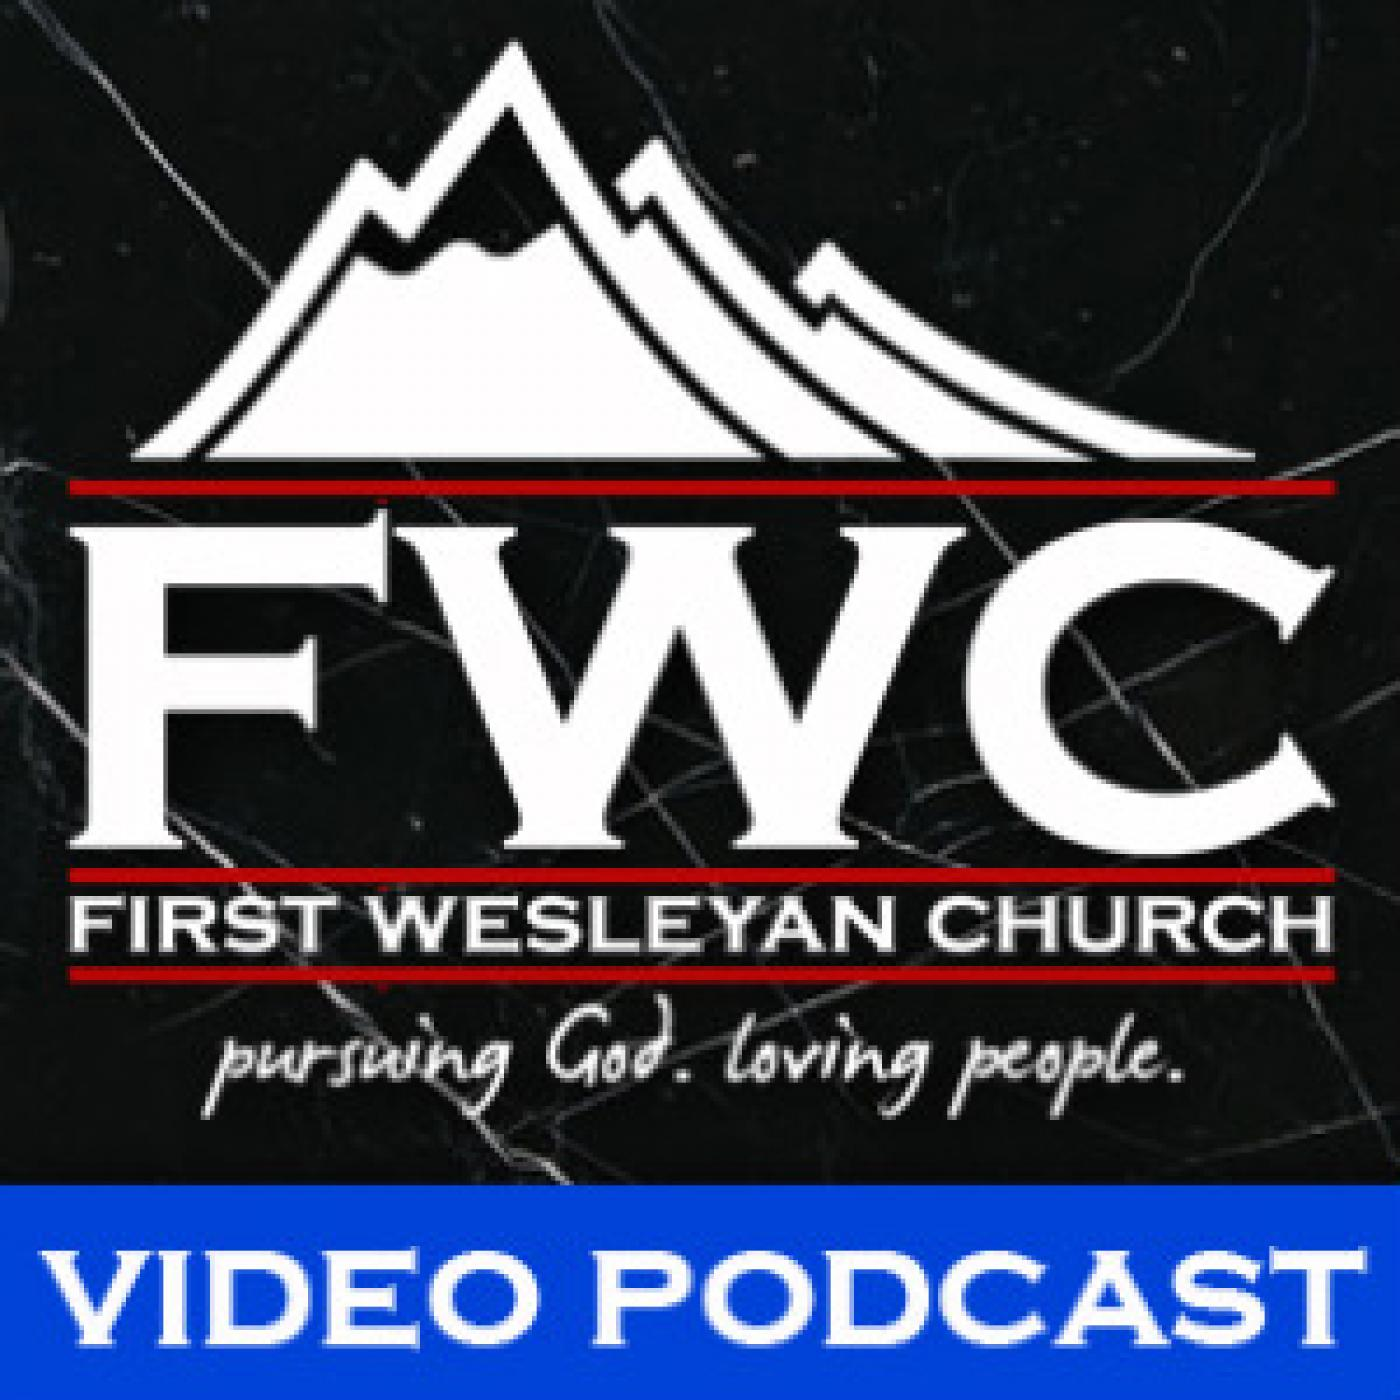 First Wesleyan Church - High Point, NC